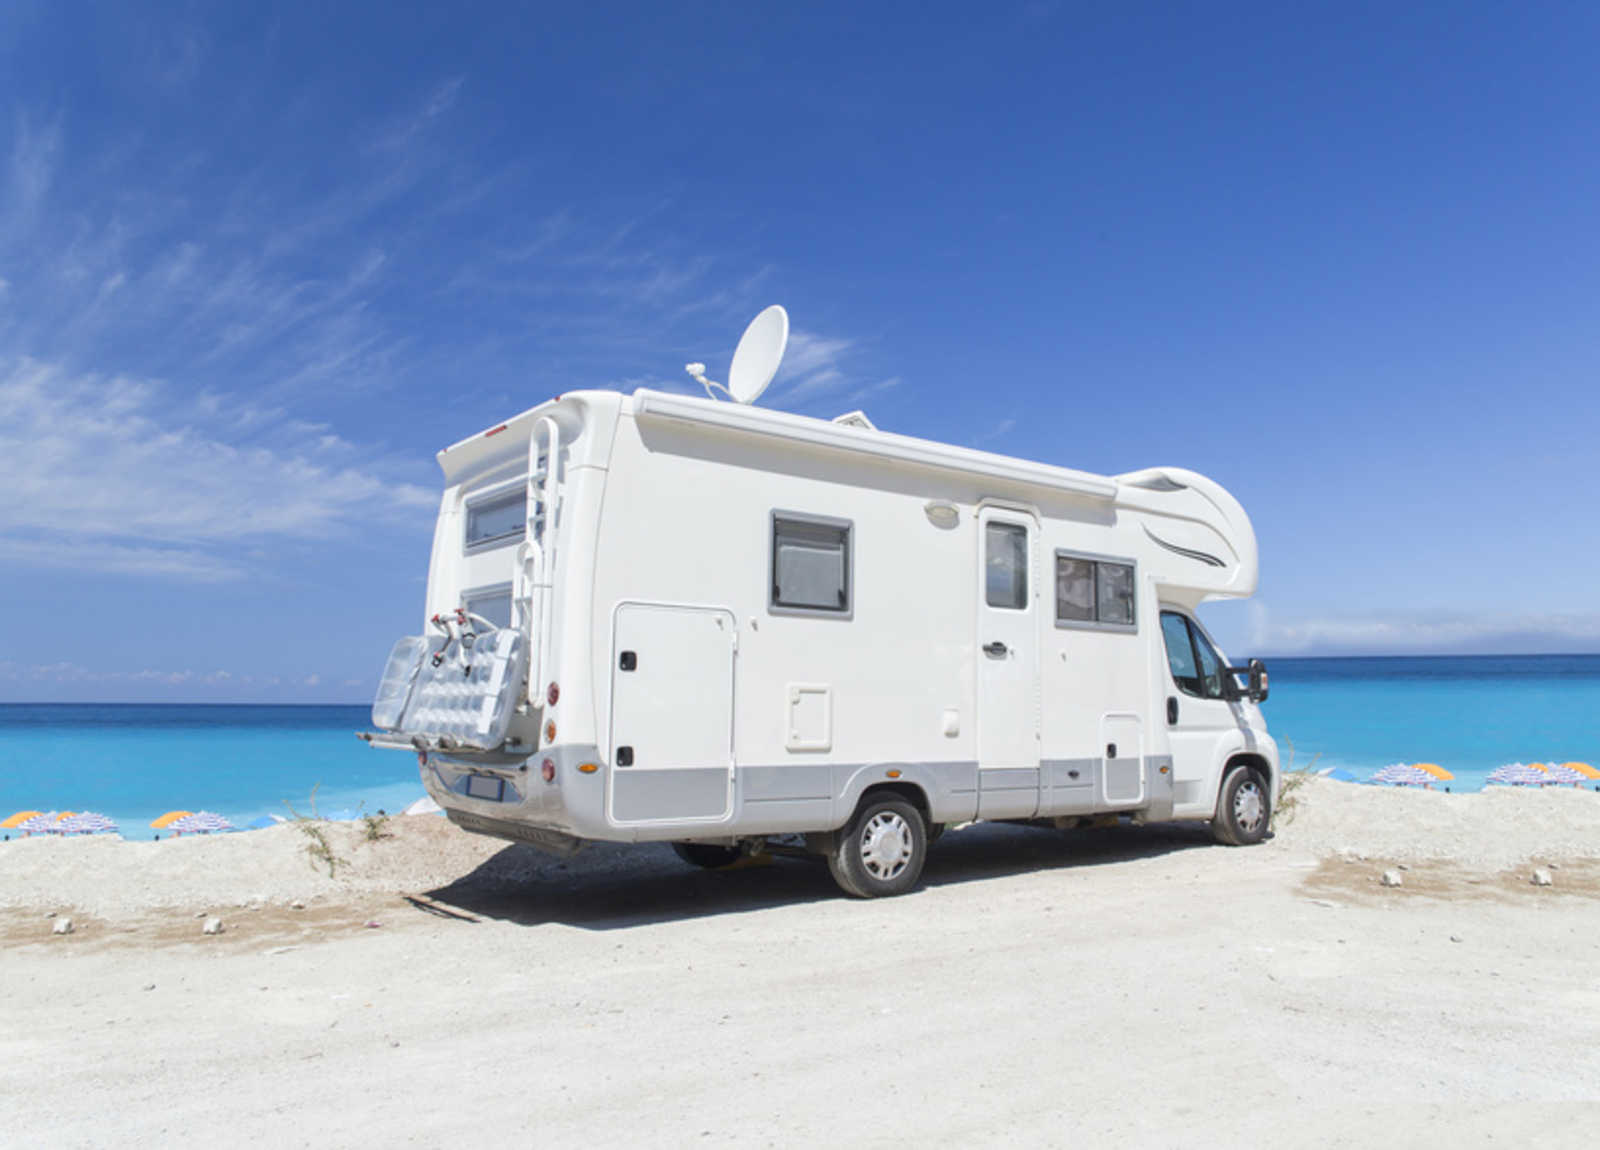 how to hook up TV to RV antenna